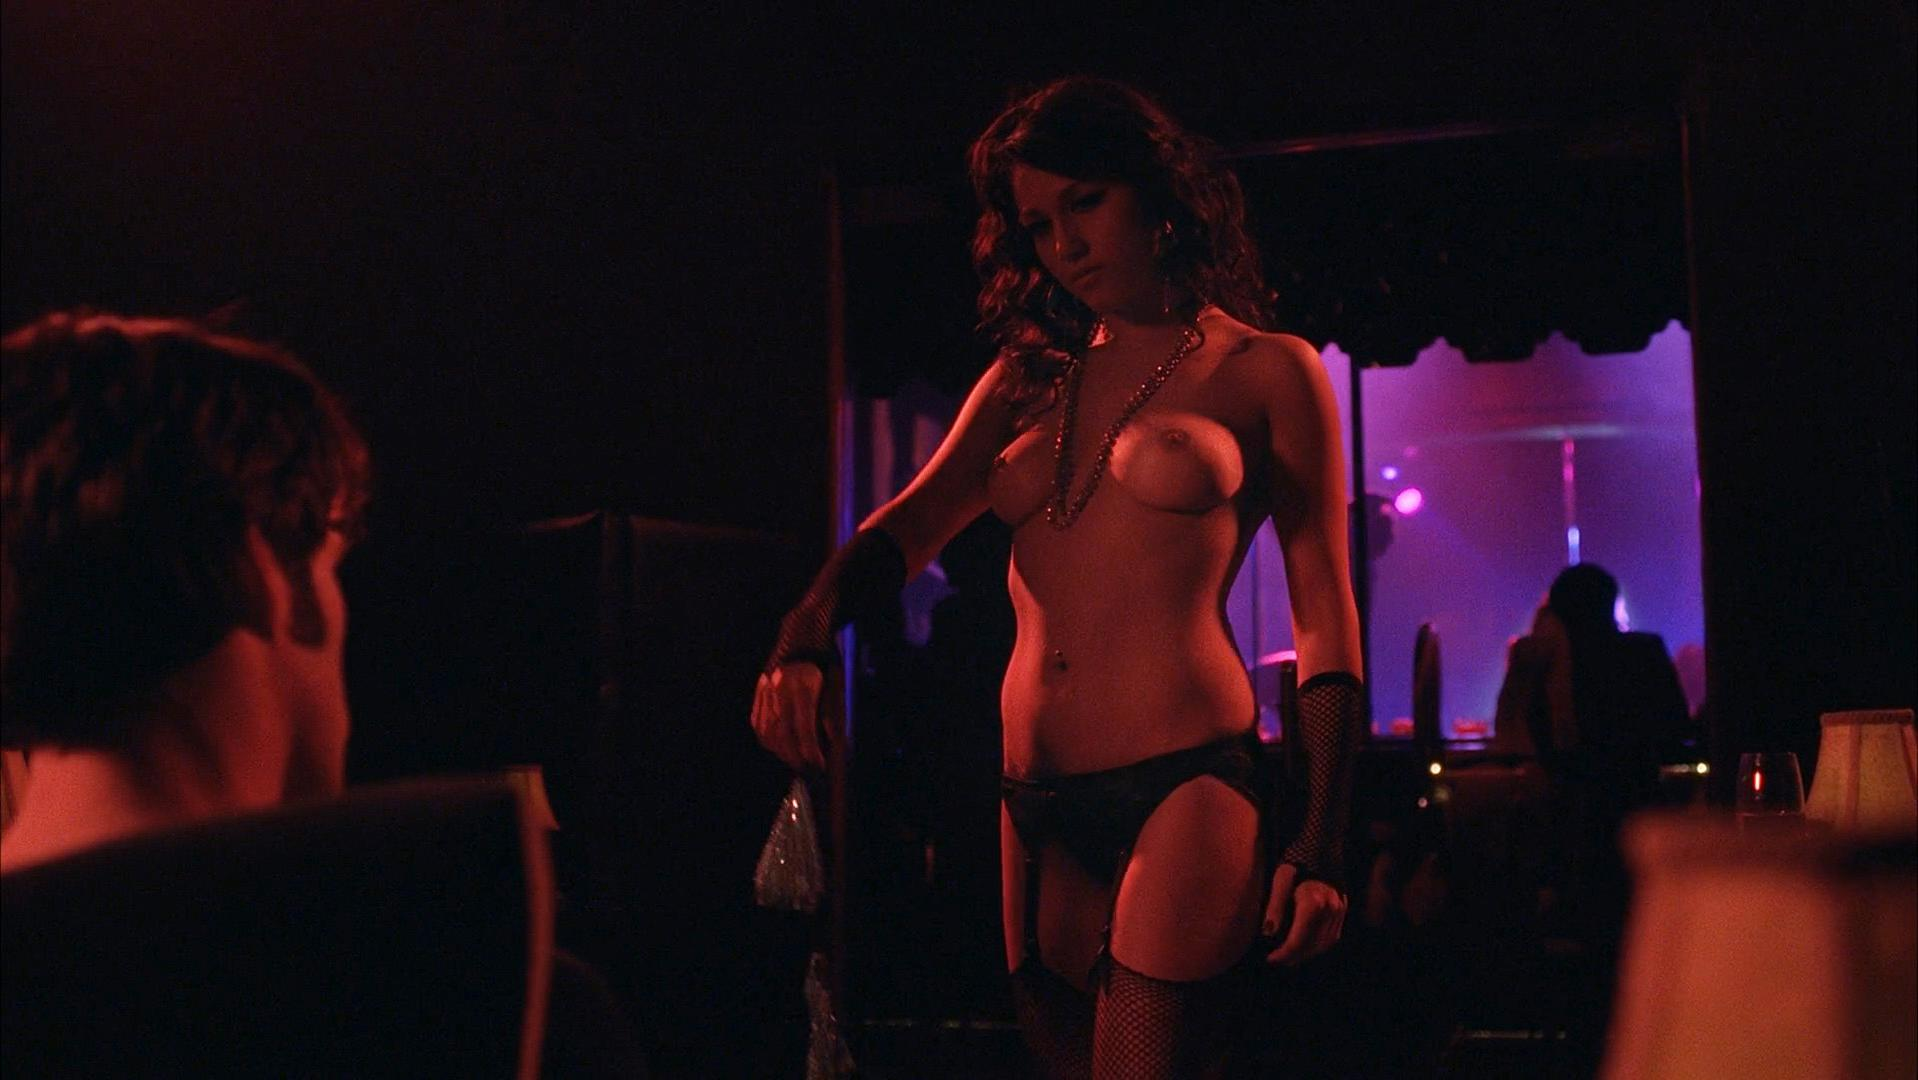 Jade Tailor nude, Natasha Alam nude - True Blood s03e04 (2010)